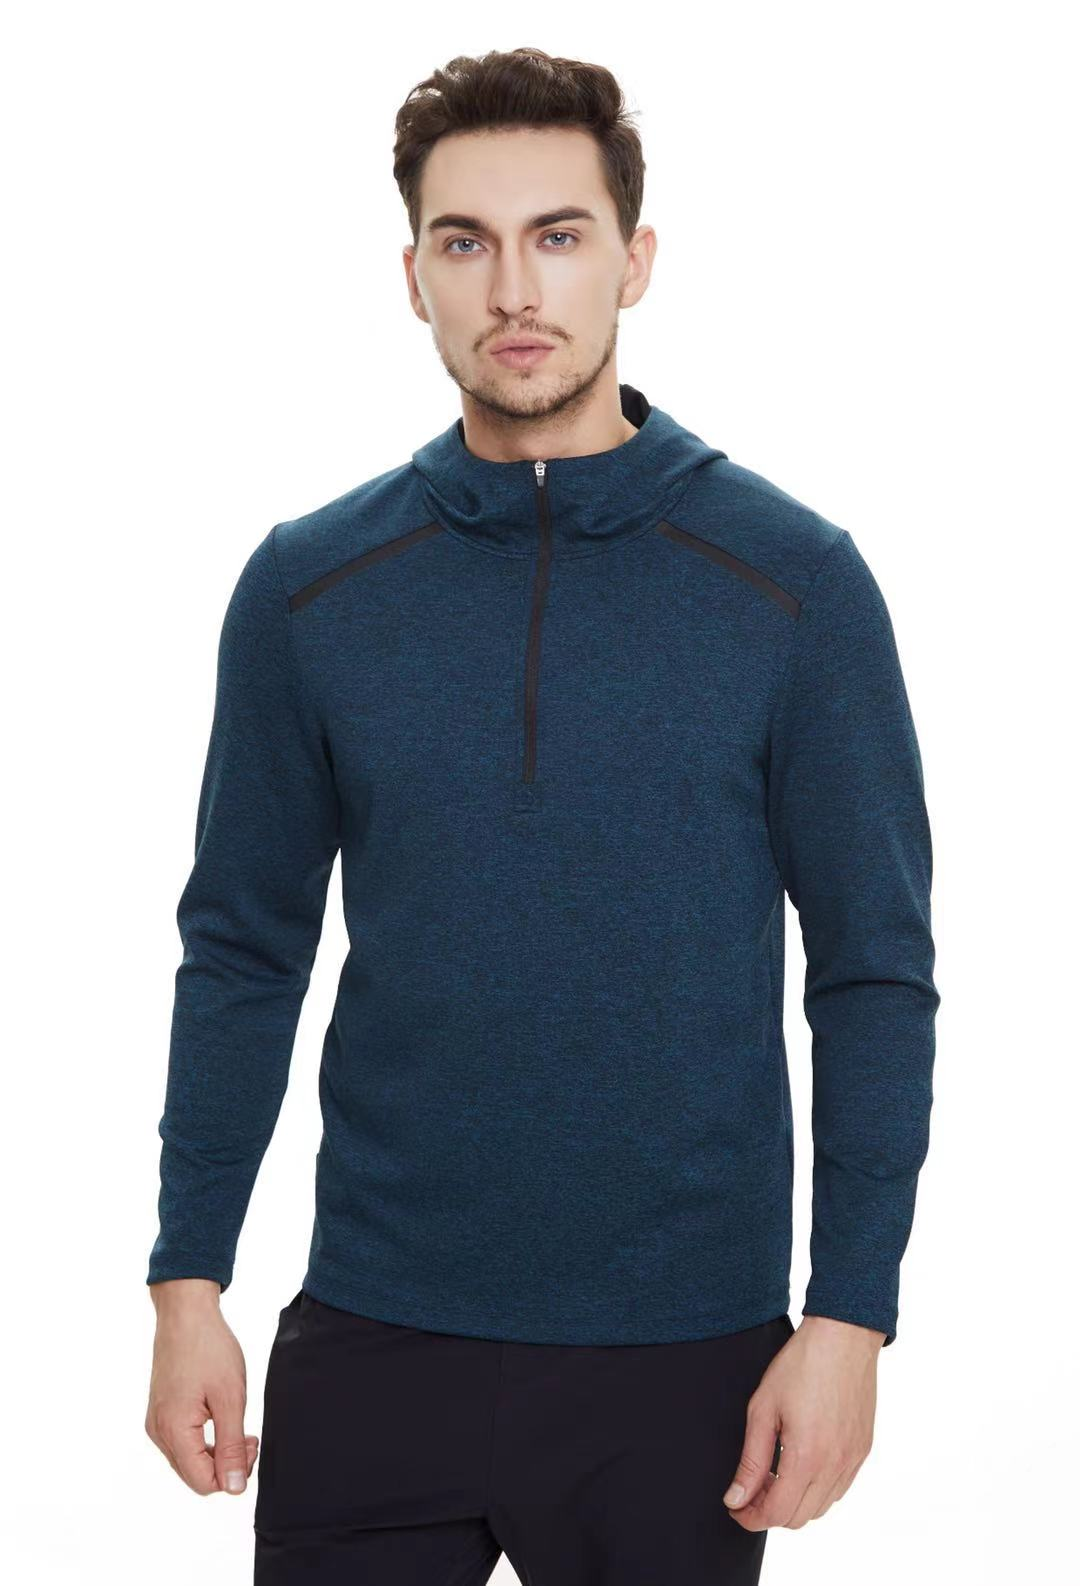 Calvo new 859505 mens fashion casual hooded quick drying breathable sweater sweater